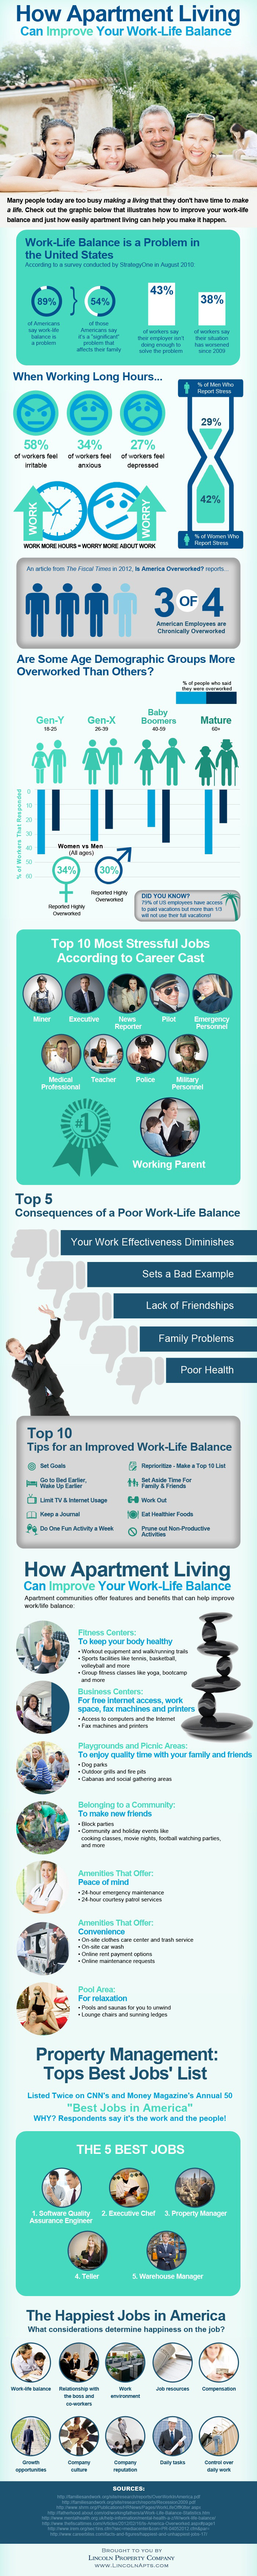 how apartment living can improve your work-life balance | visual.ly